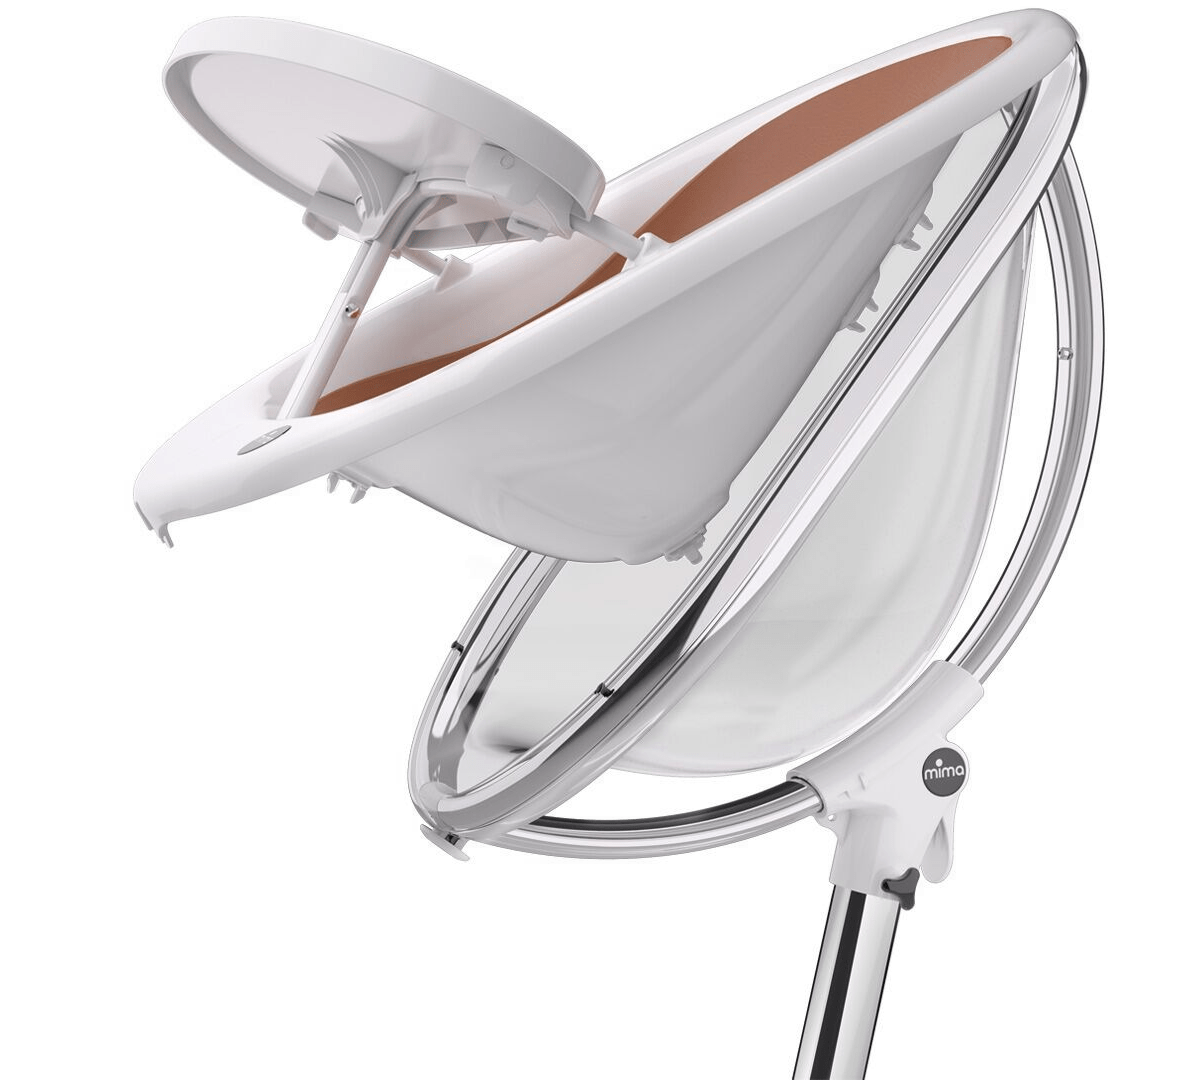 Mima Moon High Chair Mima Moon 2g High Chair White Fuschia